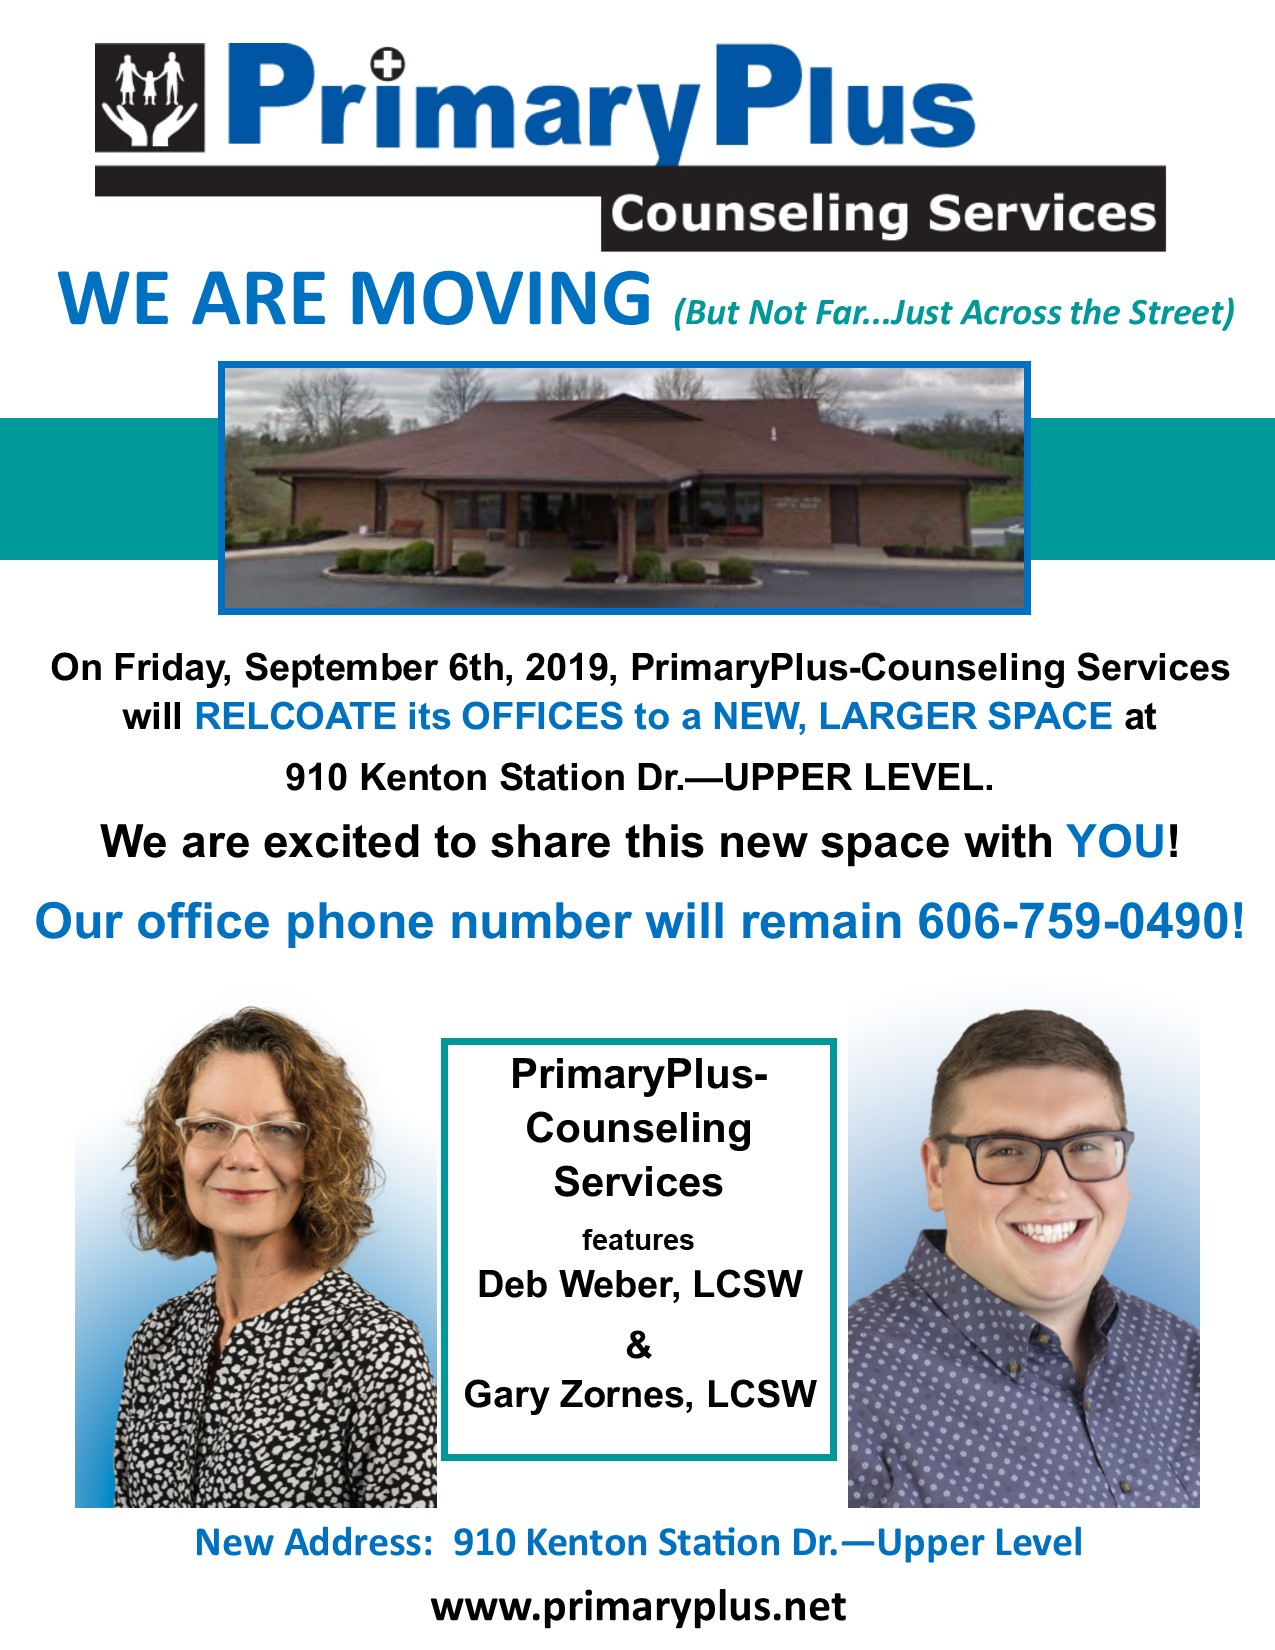 PrimaryPlus-Counseling Services MOVING to NEW LARGER OFFICE News